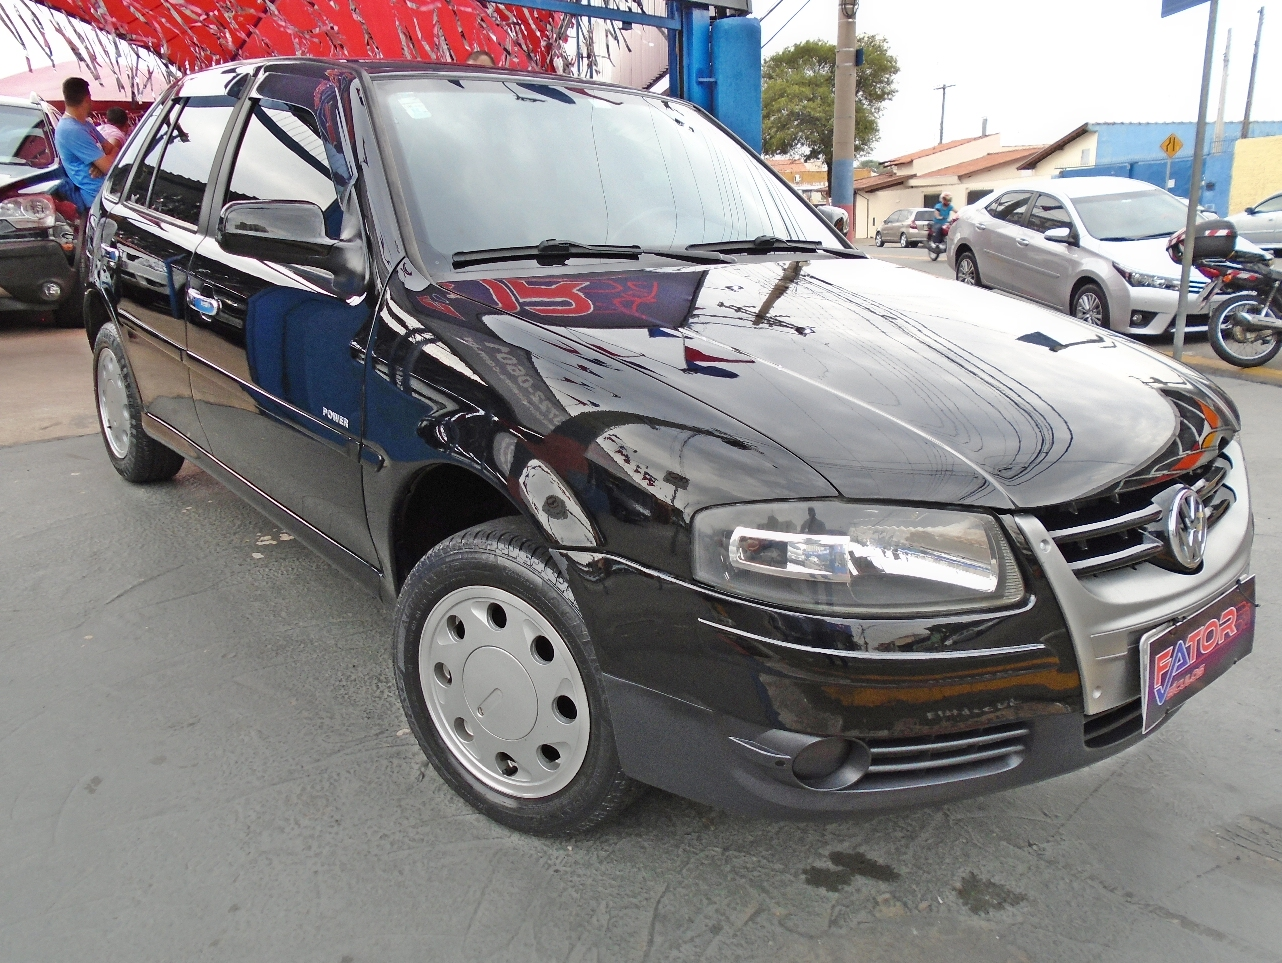 GOL1.0 MI 8V FLEX 4P MANUAL G.IV